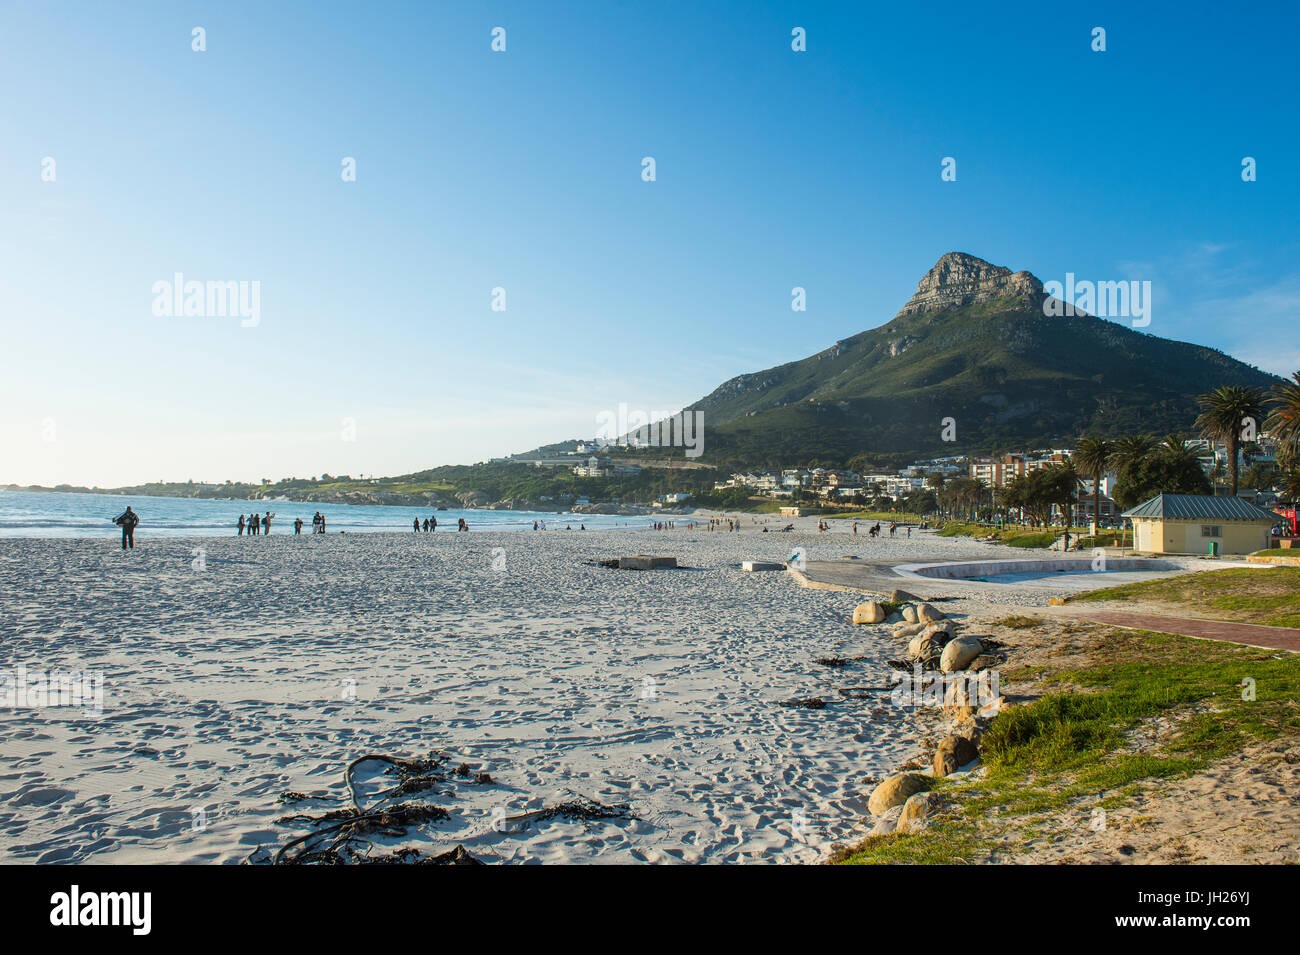 Waterfront of Camps Bay with the Lions Head in the background, suburb of Cape Town, South Africa, Africa - Stock Image